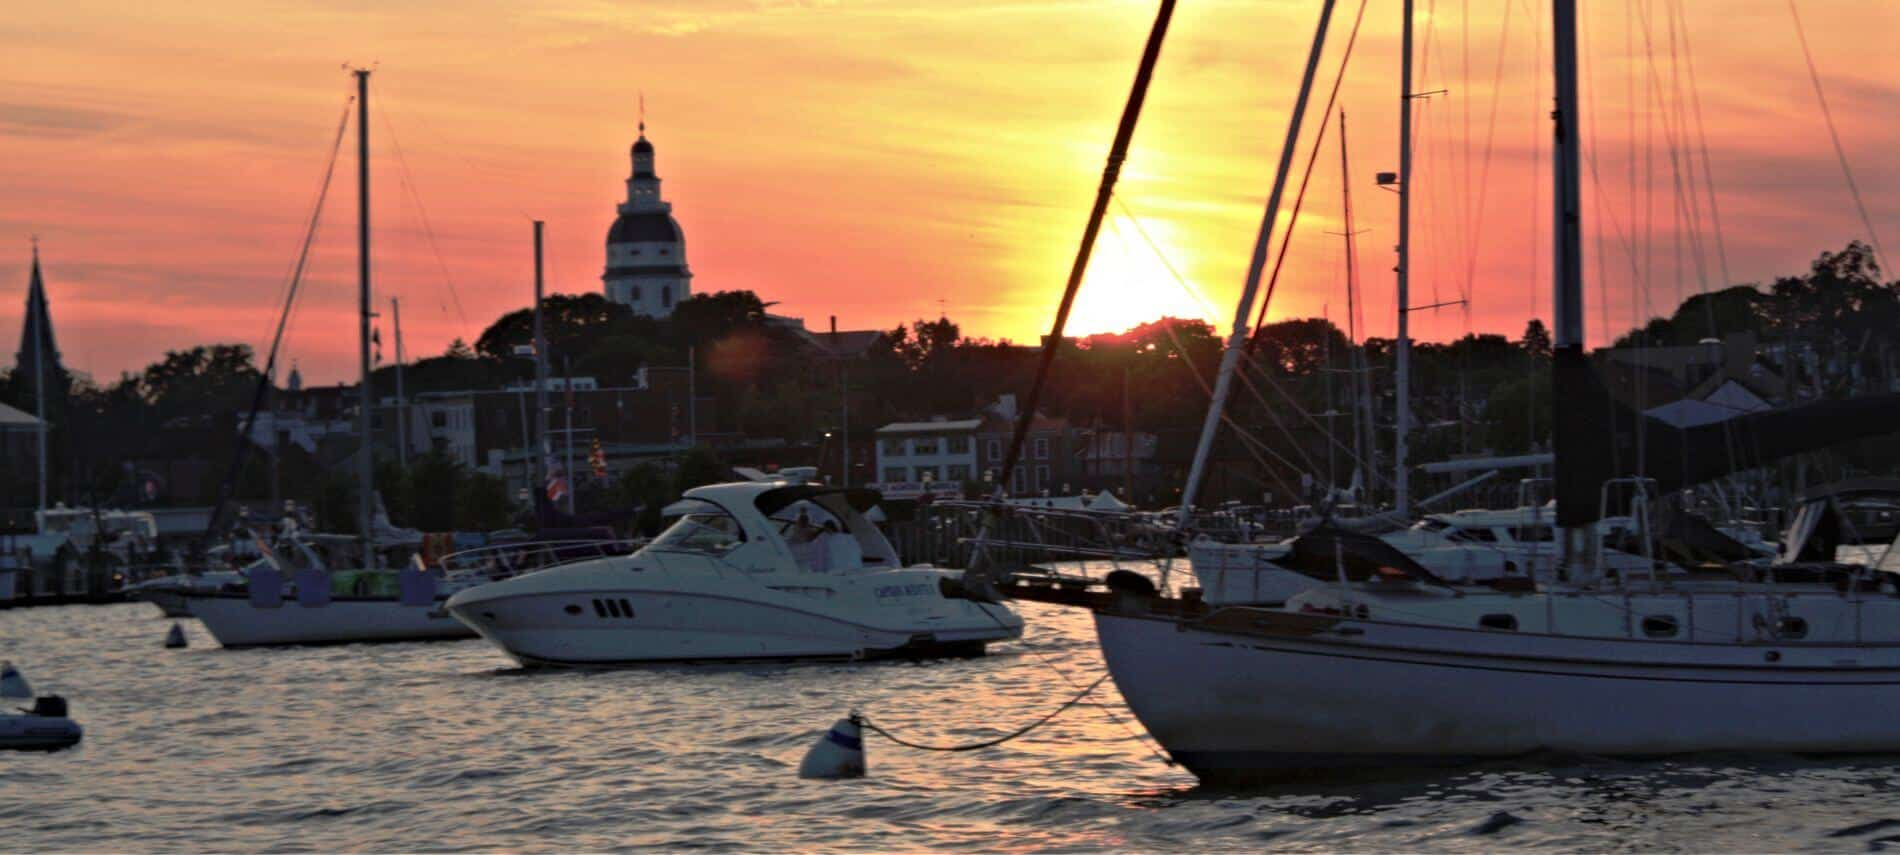 White yachts floating in harbor at sunset